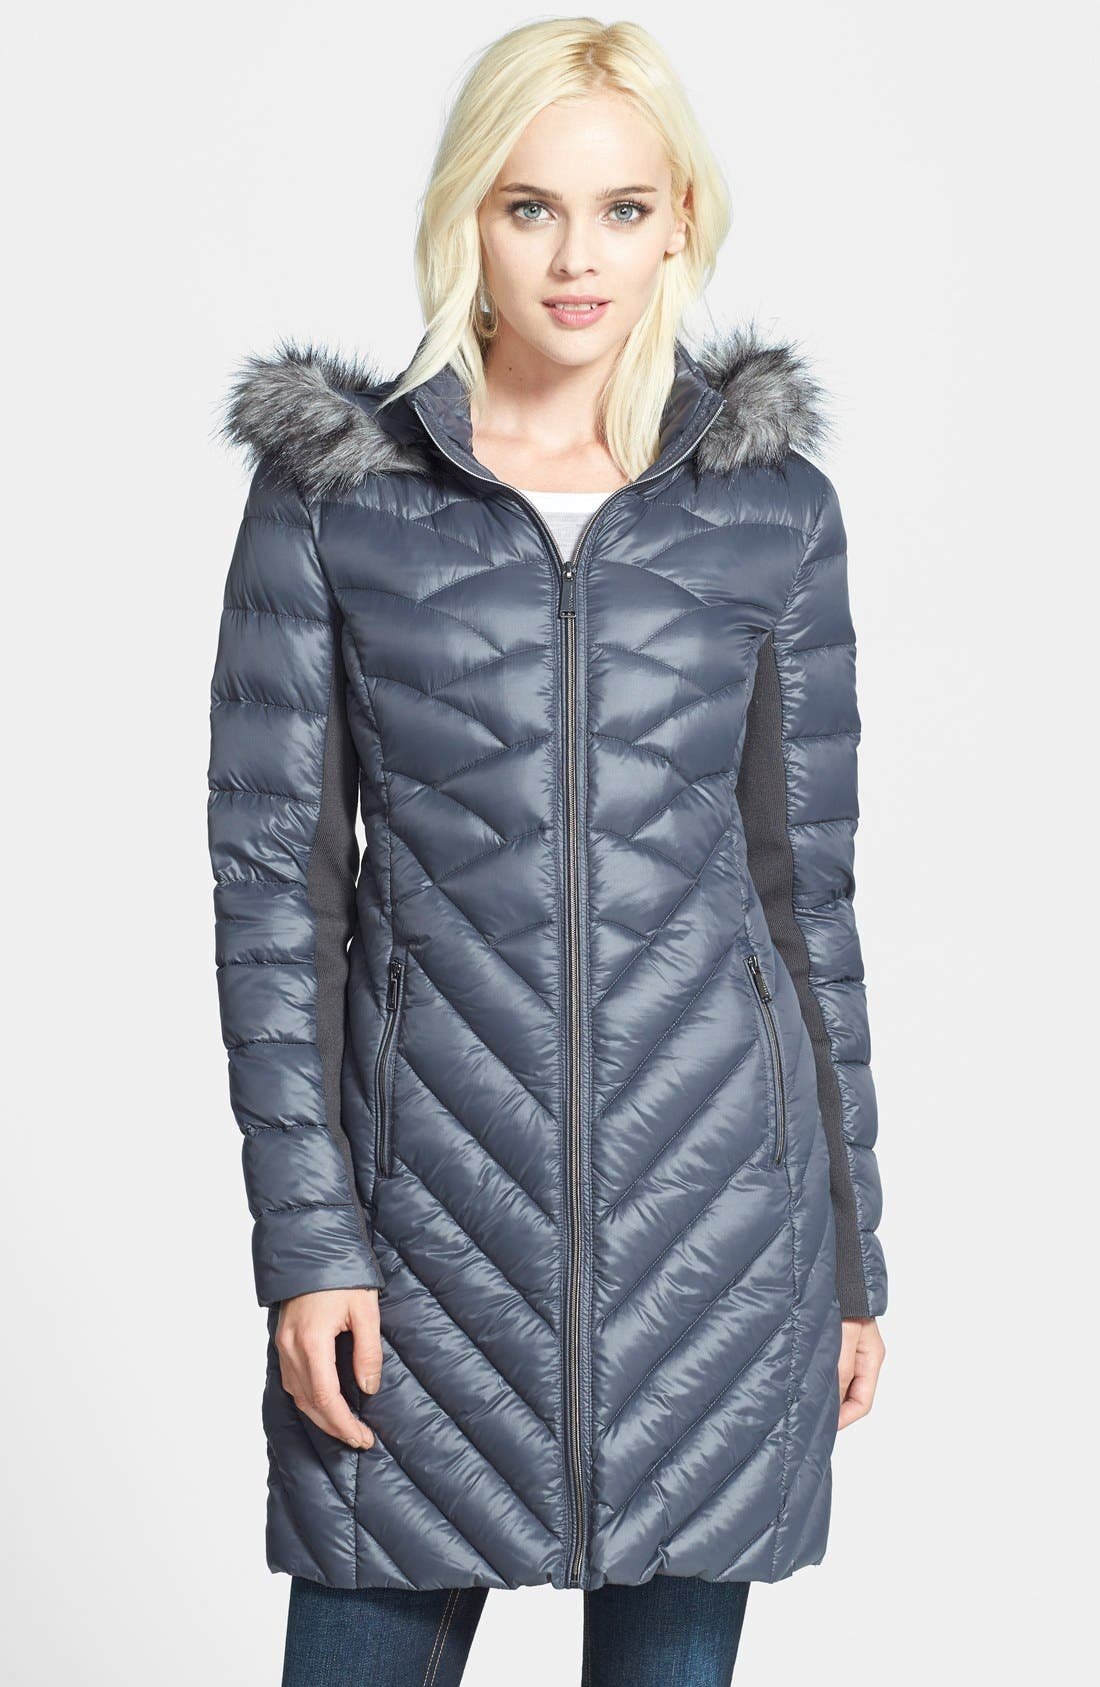 Alternate Image 1 Selected - BCBGeneration Packable Down Coat with Faux Fur Trim